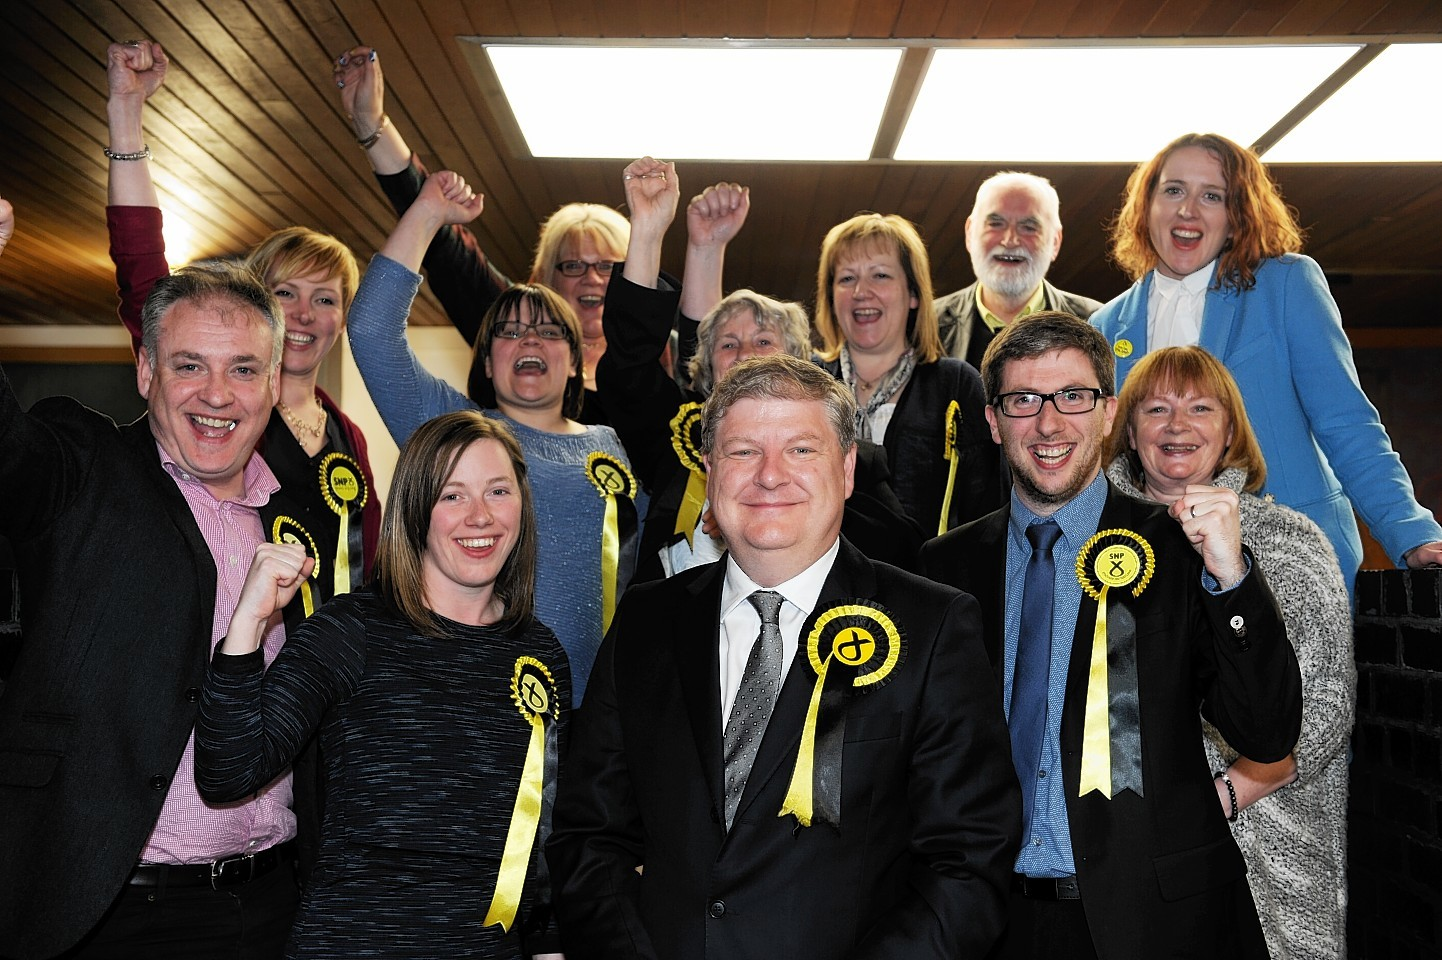 The Moray count at Elgin Town Hall. Angus Robertson who retained his seat with his supporters. Picture by Gordon Lennox